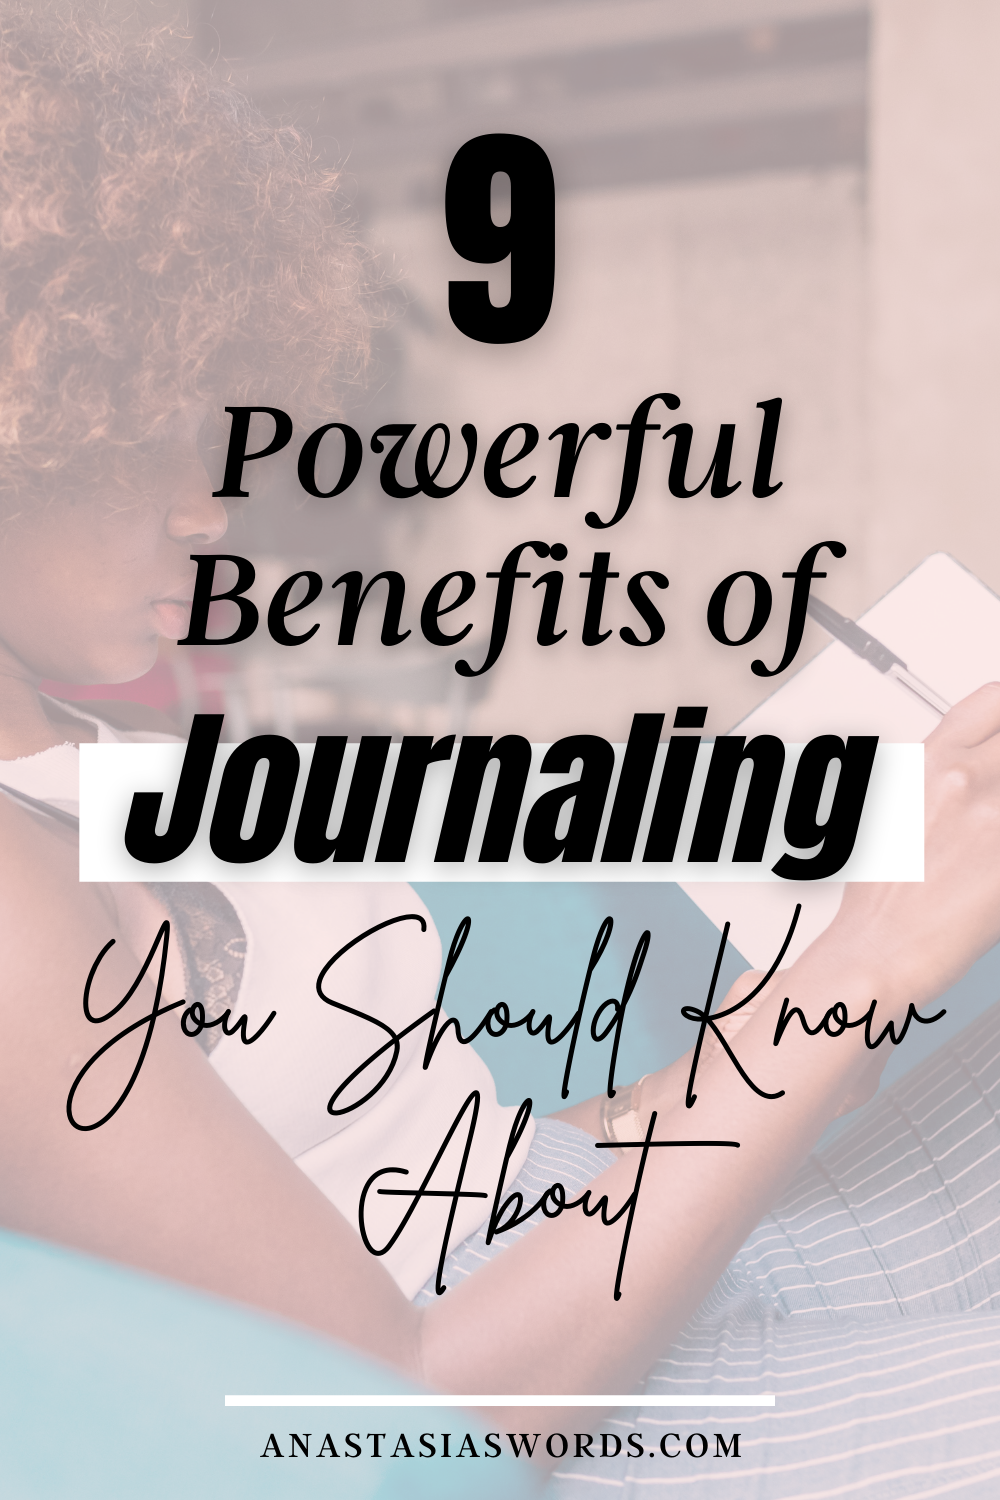 A woman sitting on a chair writing in a journal. There is a text overlay that says 9 Powerful Benefits of Journaling You Should Know About anastasiaswords.com